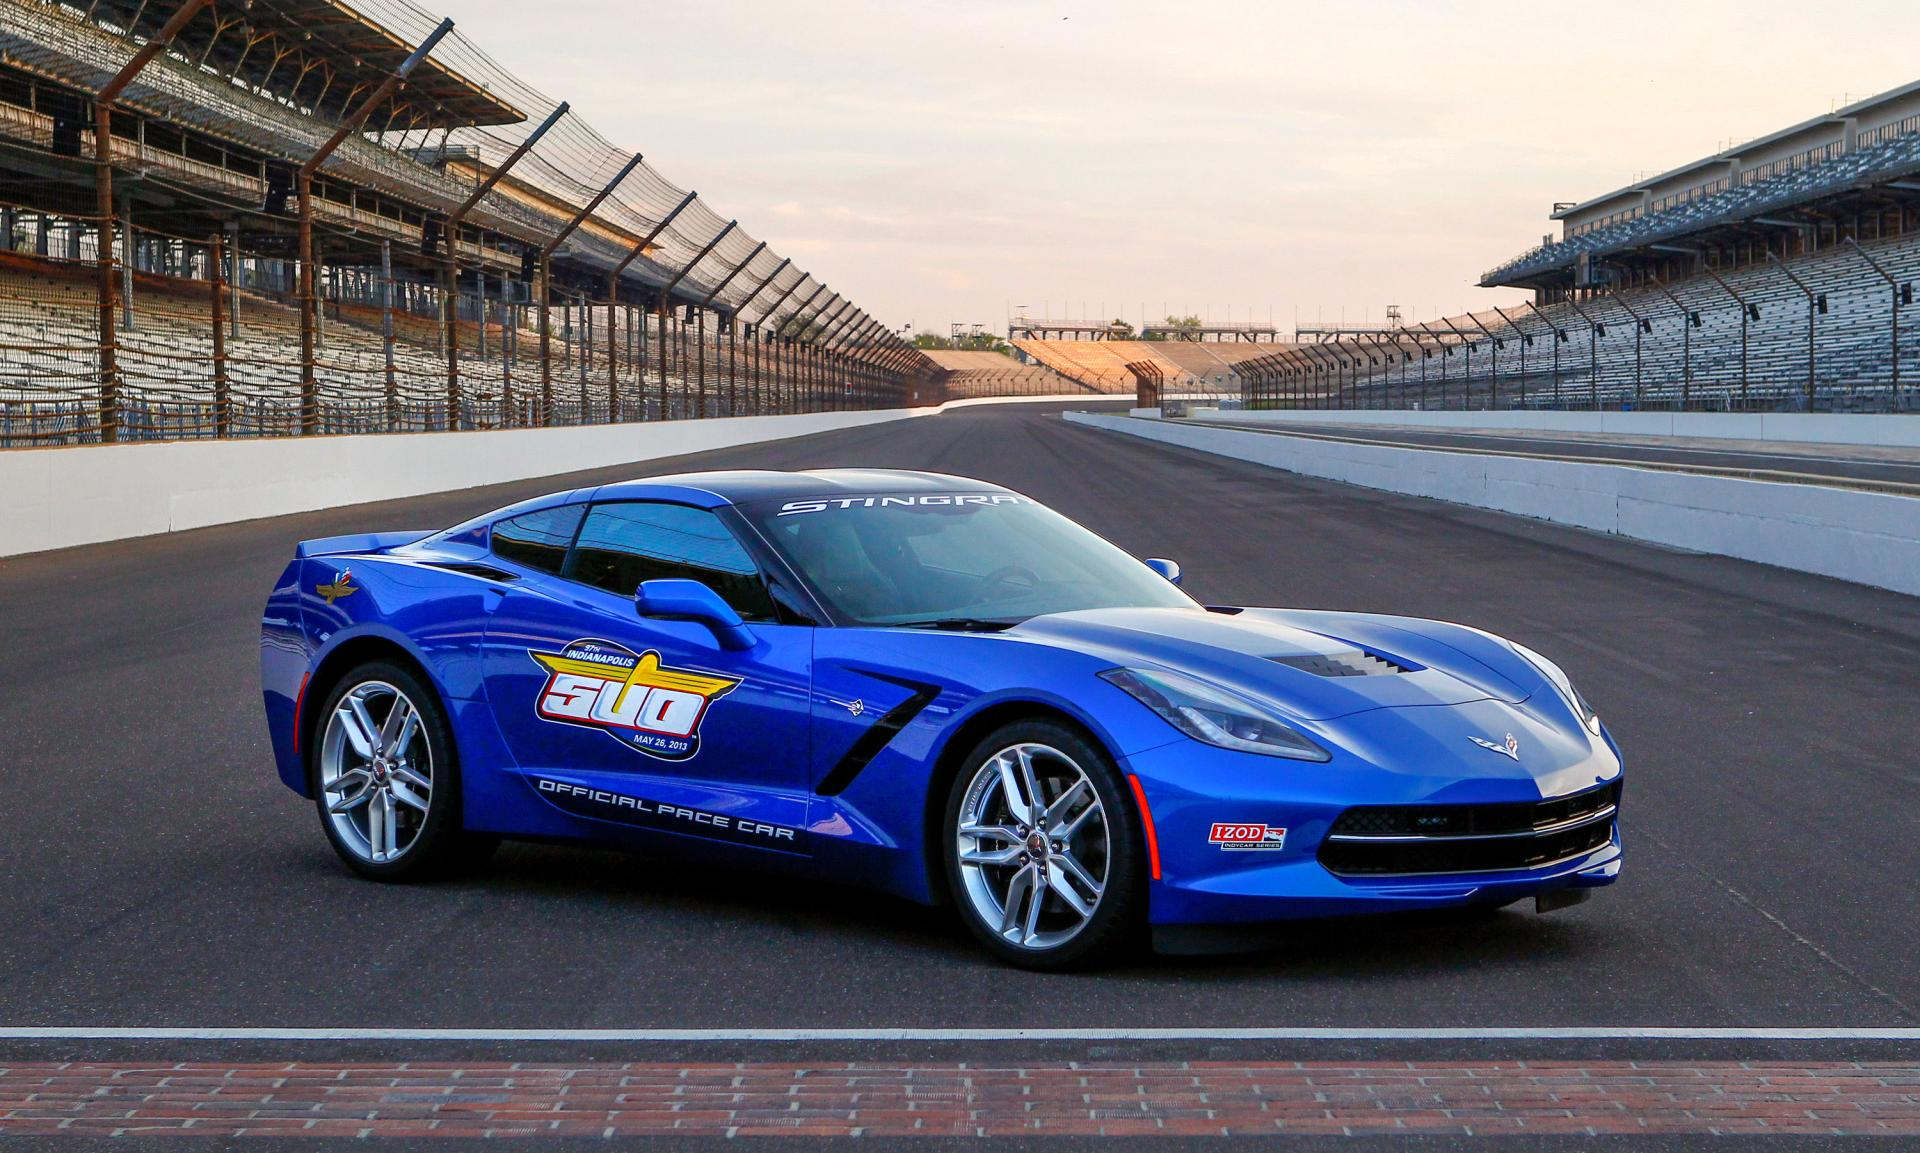 2014 chevrolet corvette stingray indy 500 pace car news and information. Black Bedroom Furniture Sets. Home Design Ideas